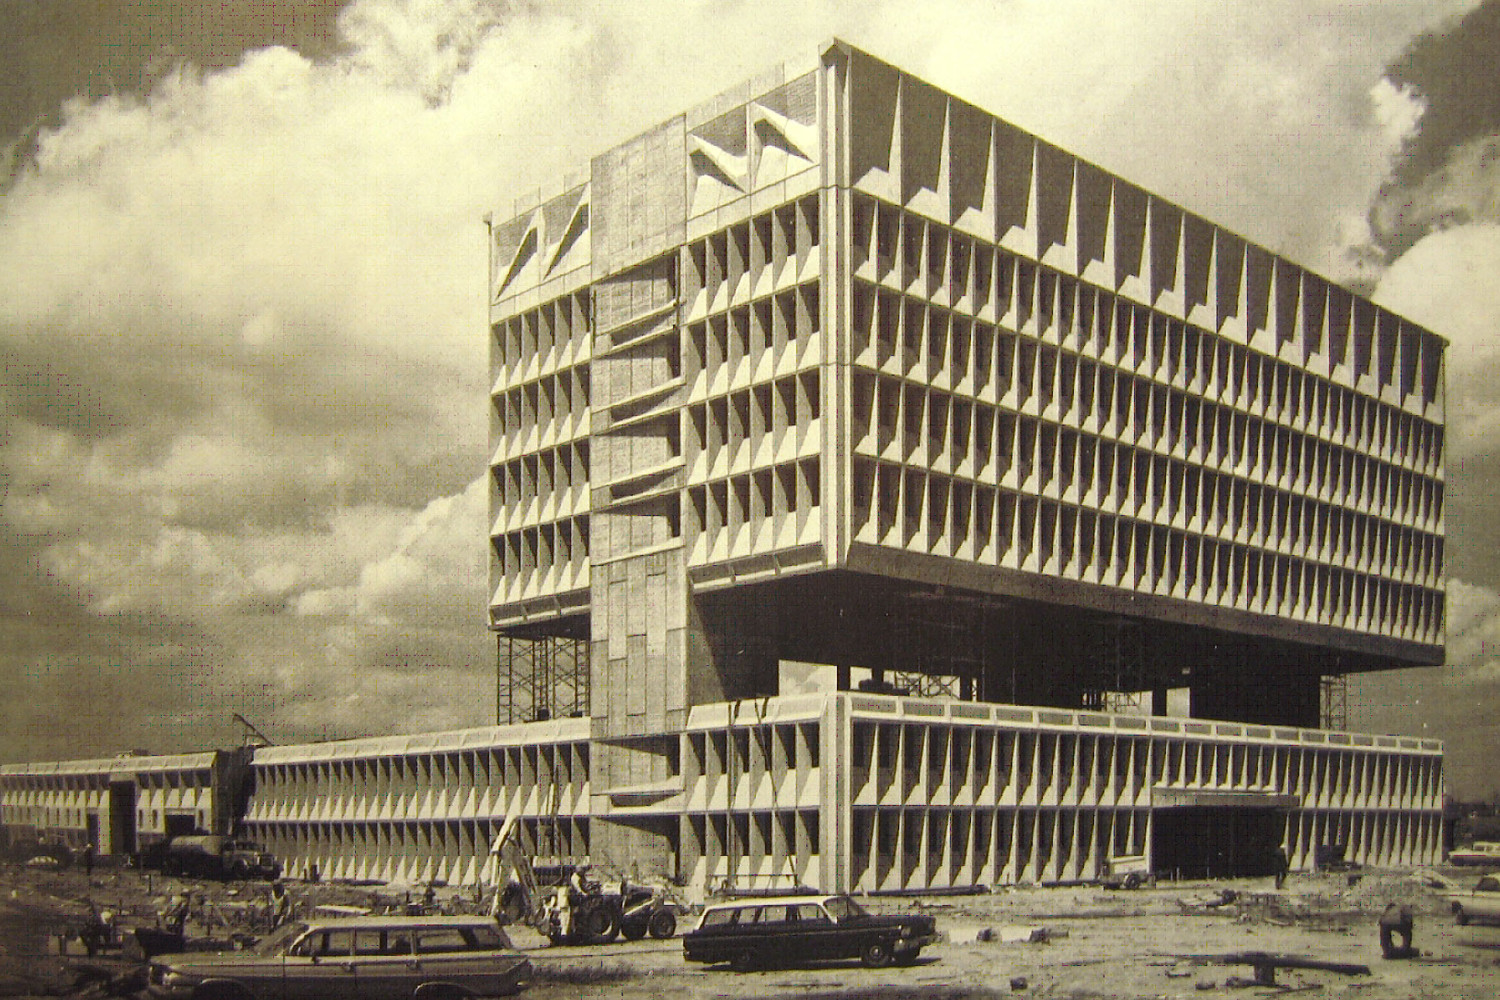 Breuer later designed and built the Pirelli Tire Company headquarters, which shared many similarities with his design for UVA.  (Source: Imgur)